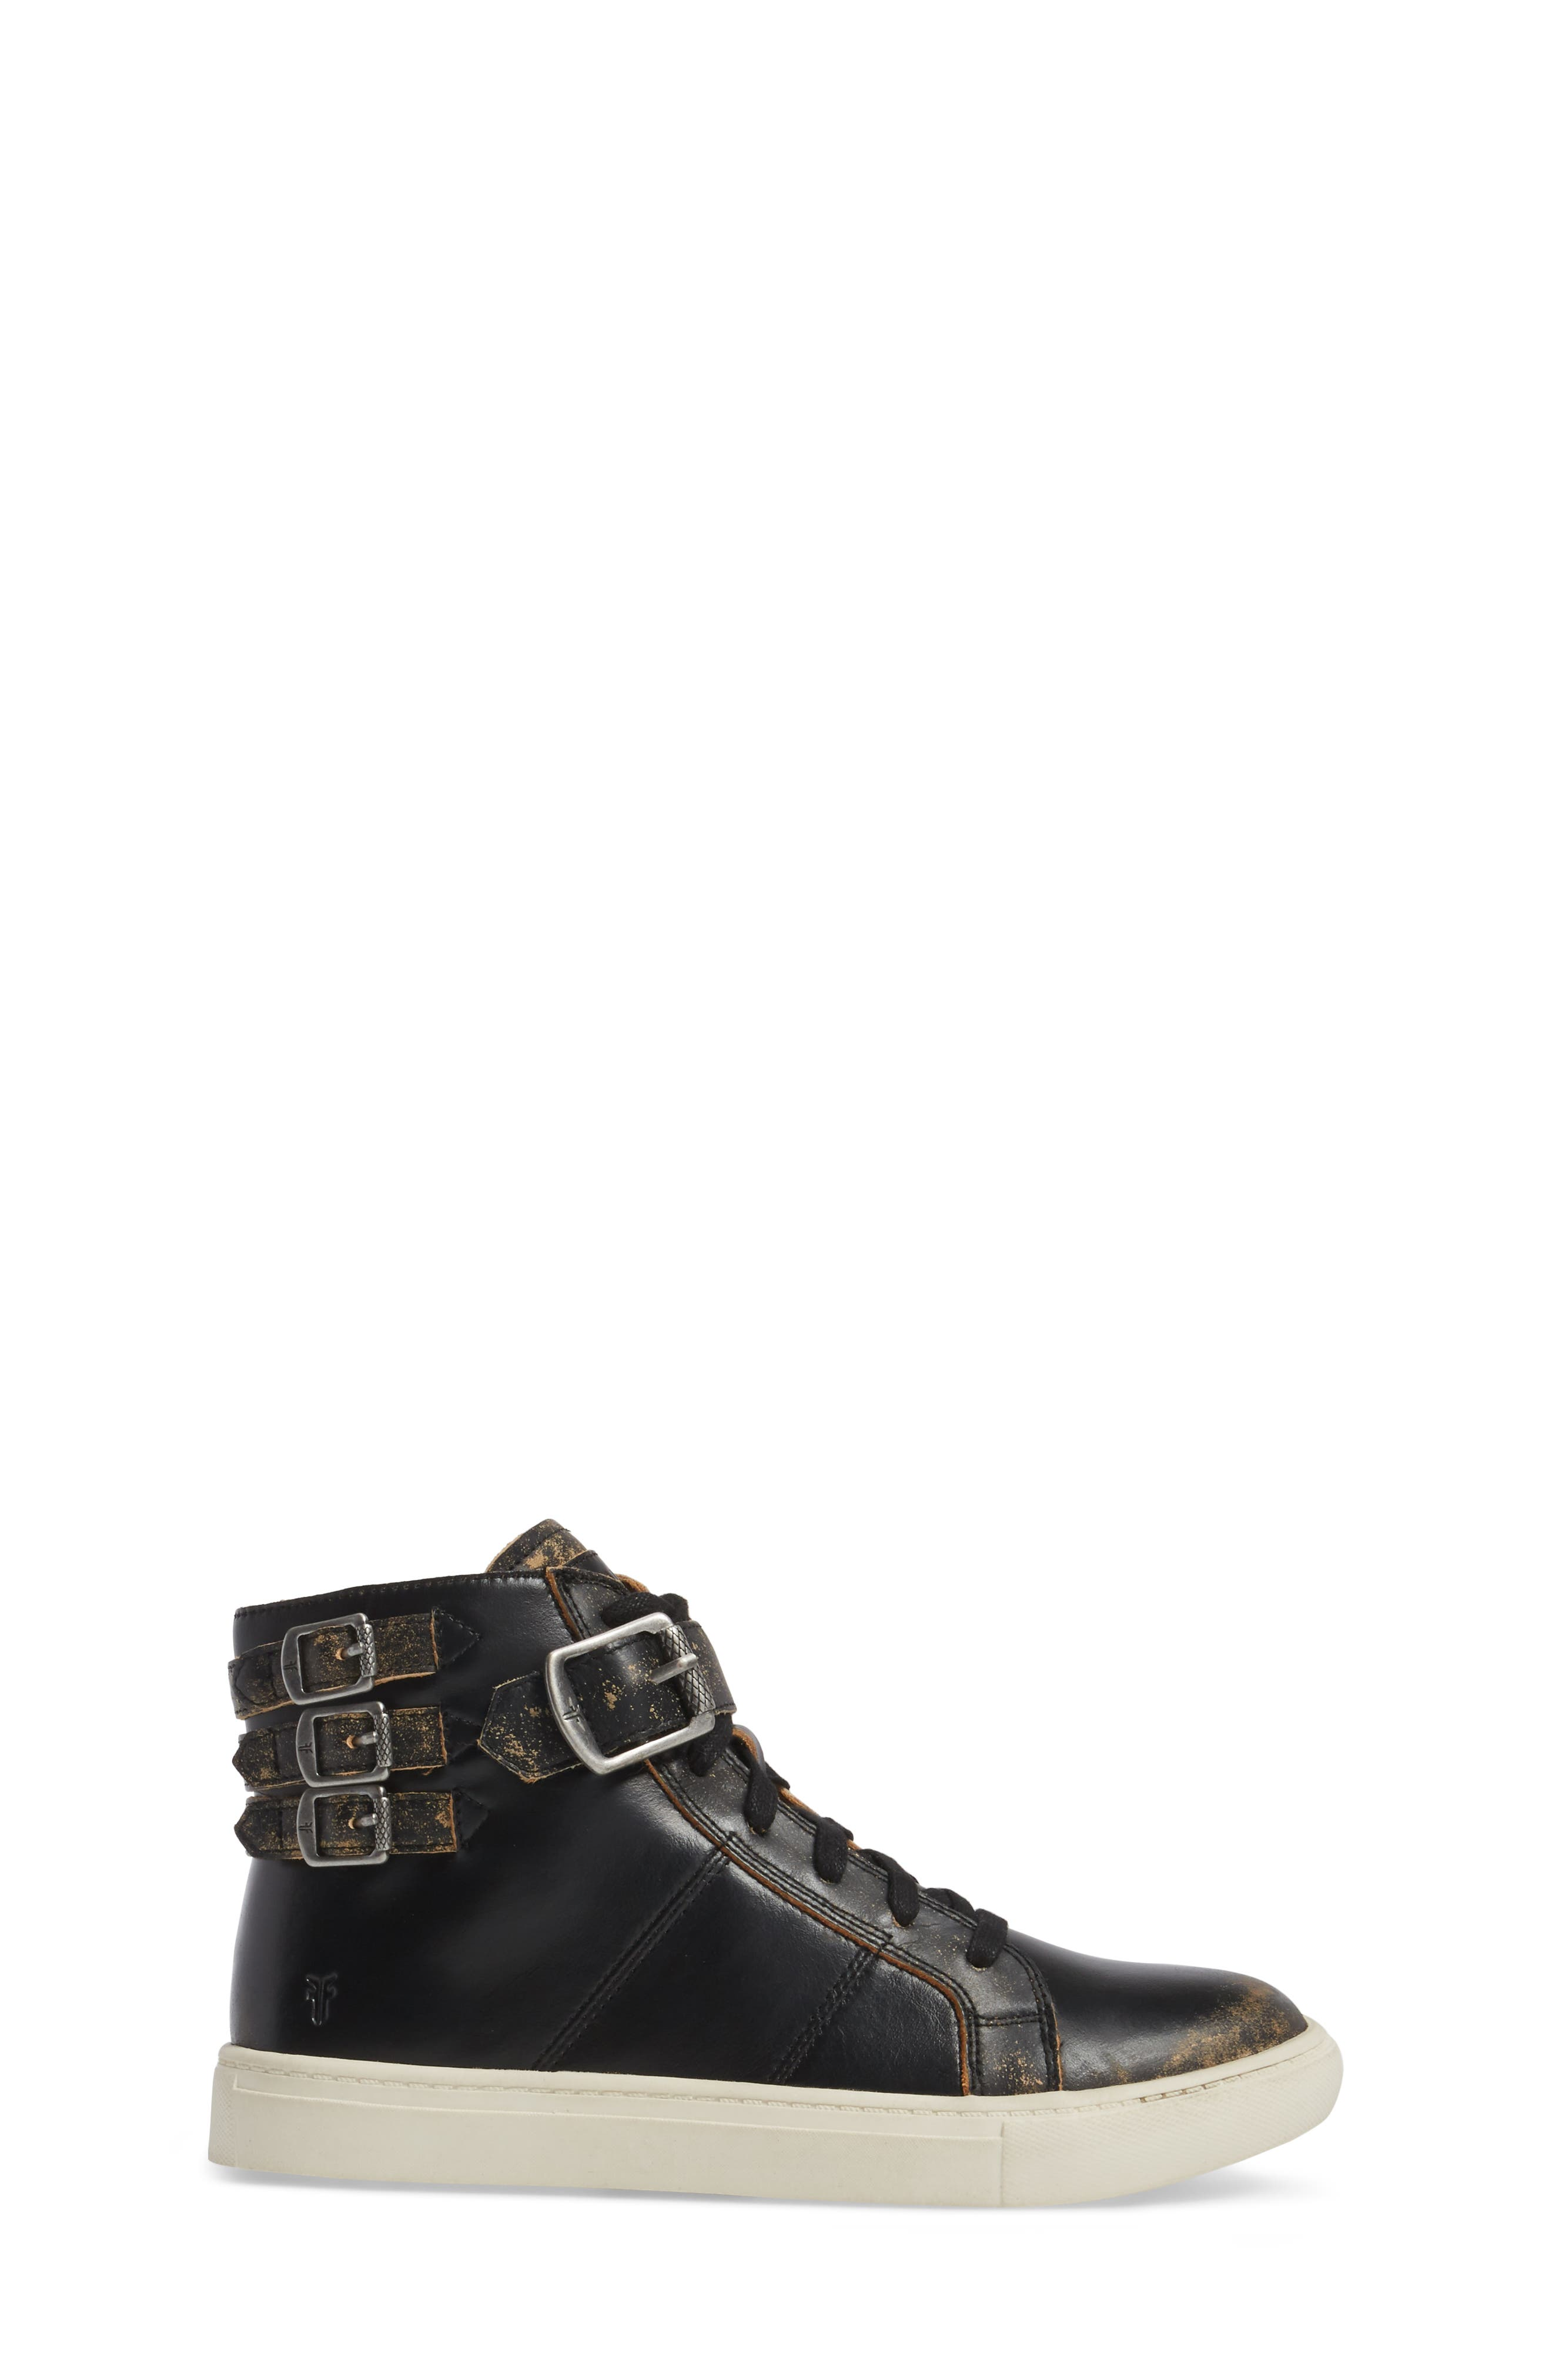 Alternate Image 3  - Frye Dylan Buckle Strap High-Top Sneaker (Toddler, Little Kid & Big Kid)